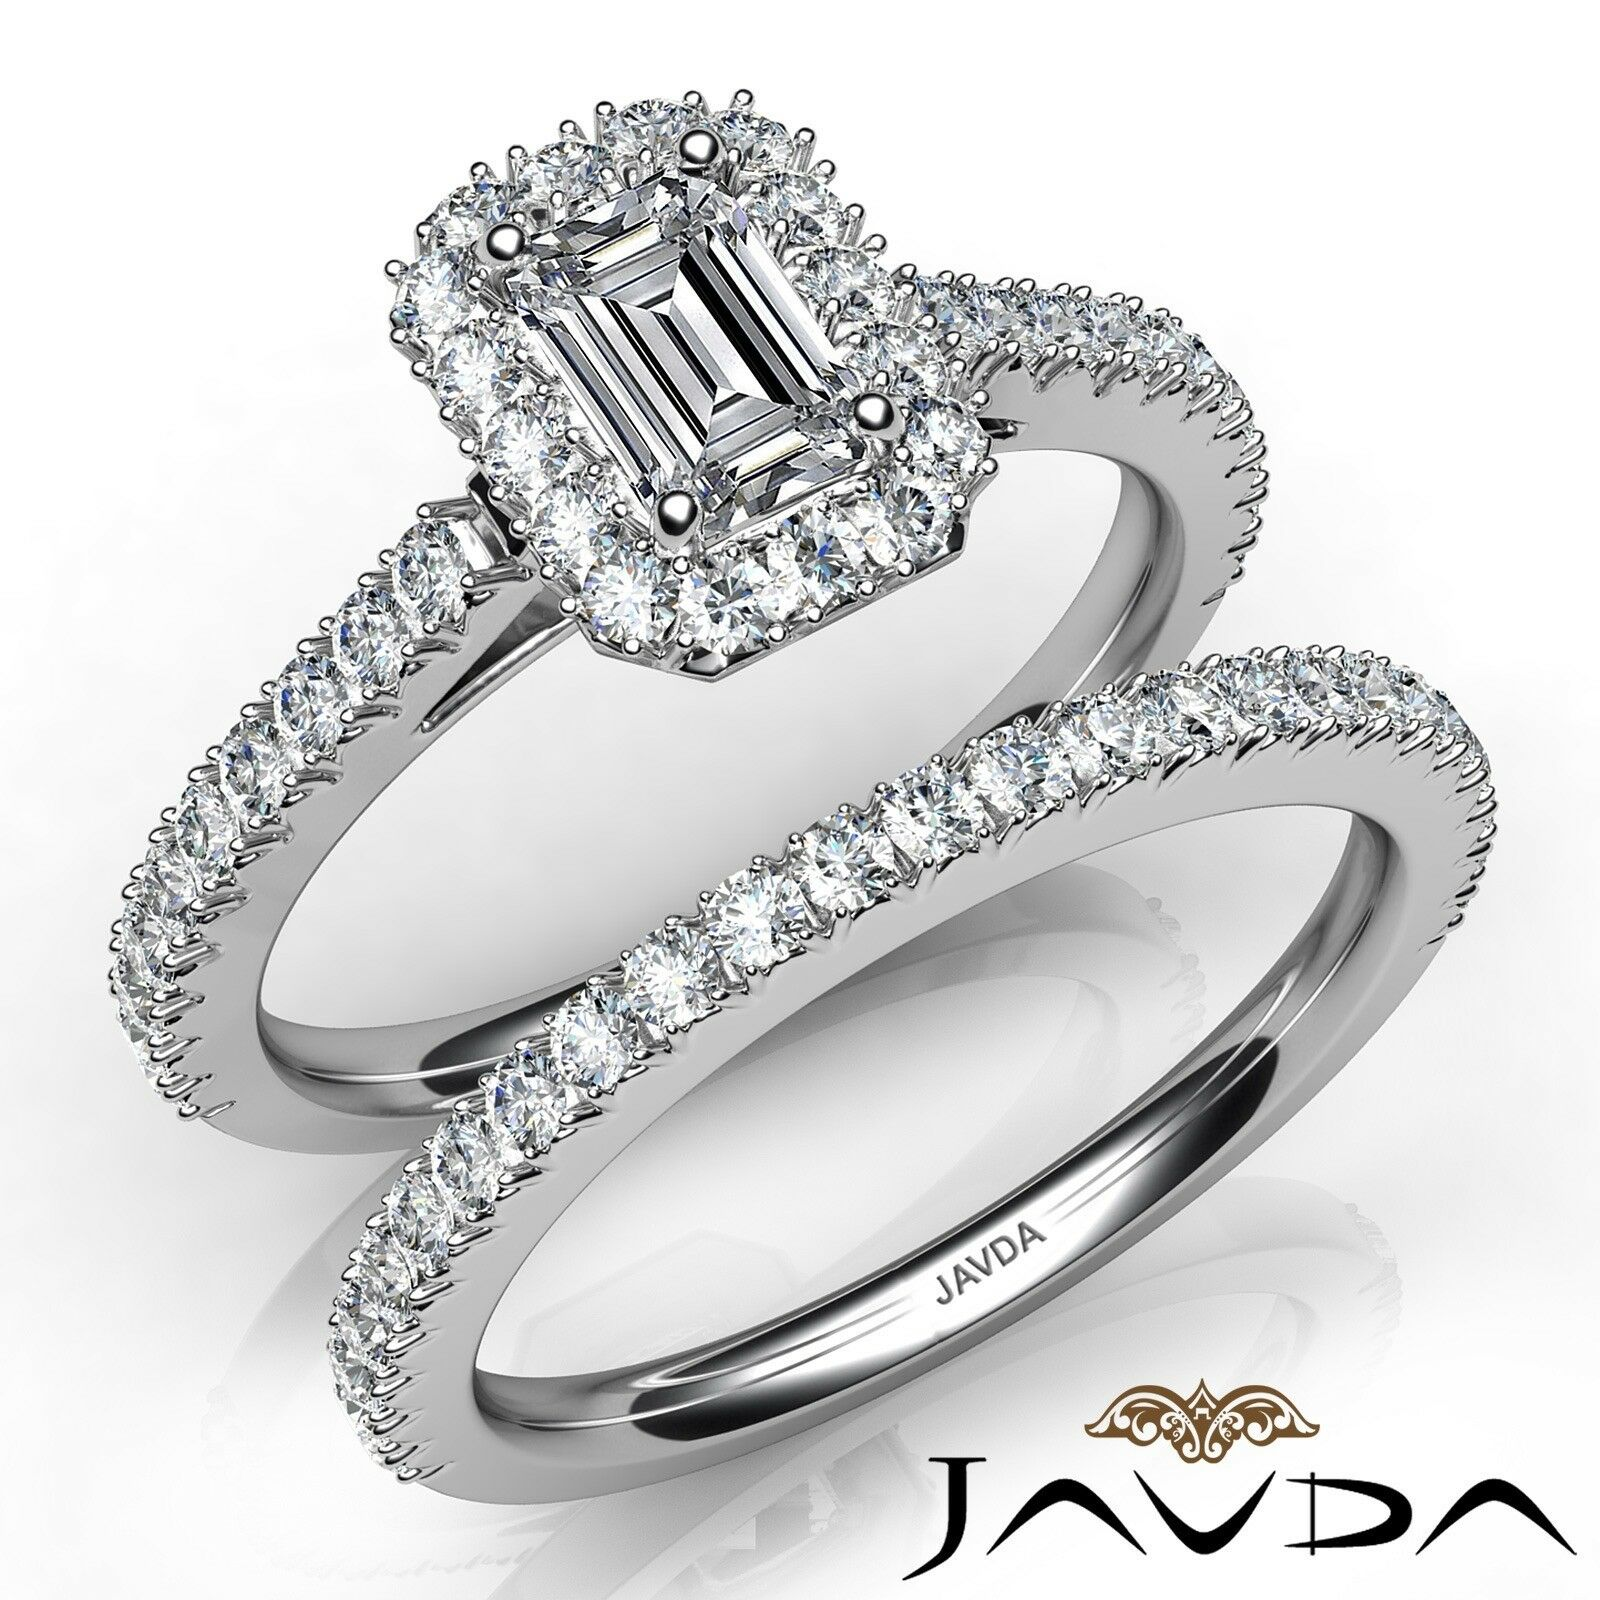 2ctw French Pave Halo Bridal Emerald Diamond Engagement Ring GIA H-VVS2 W Gold